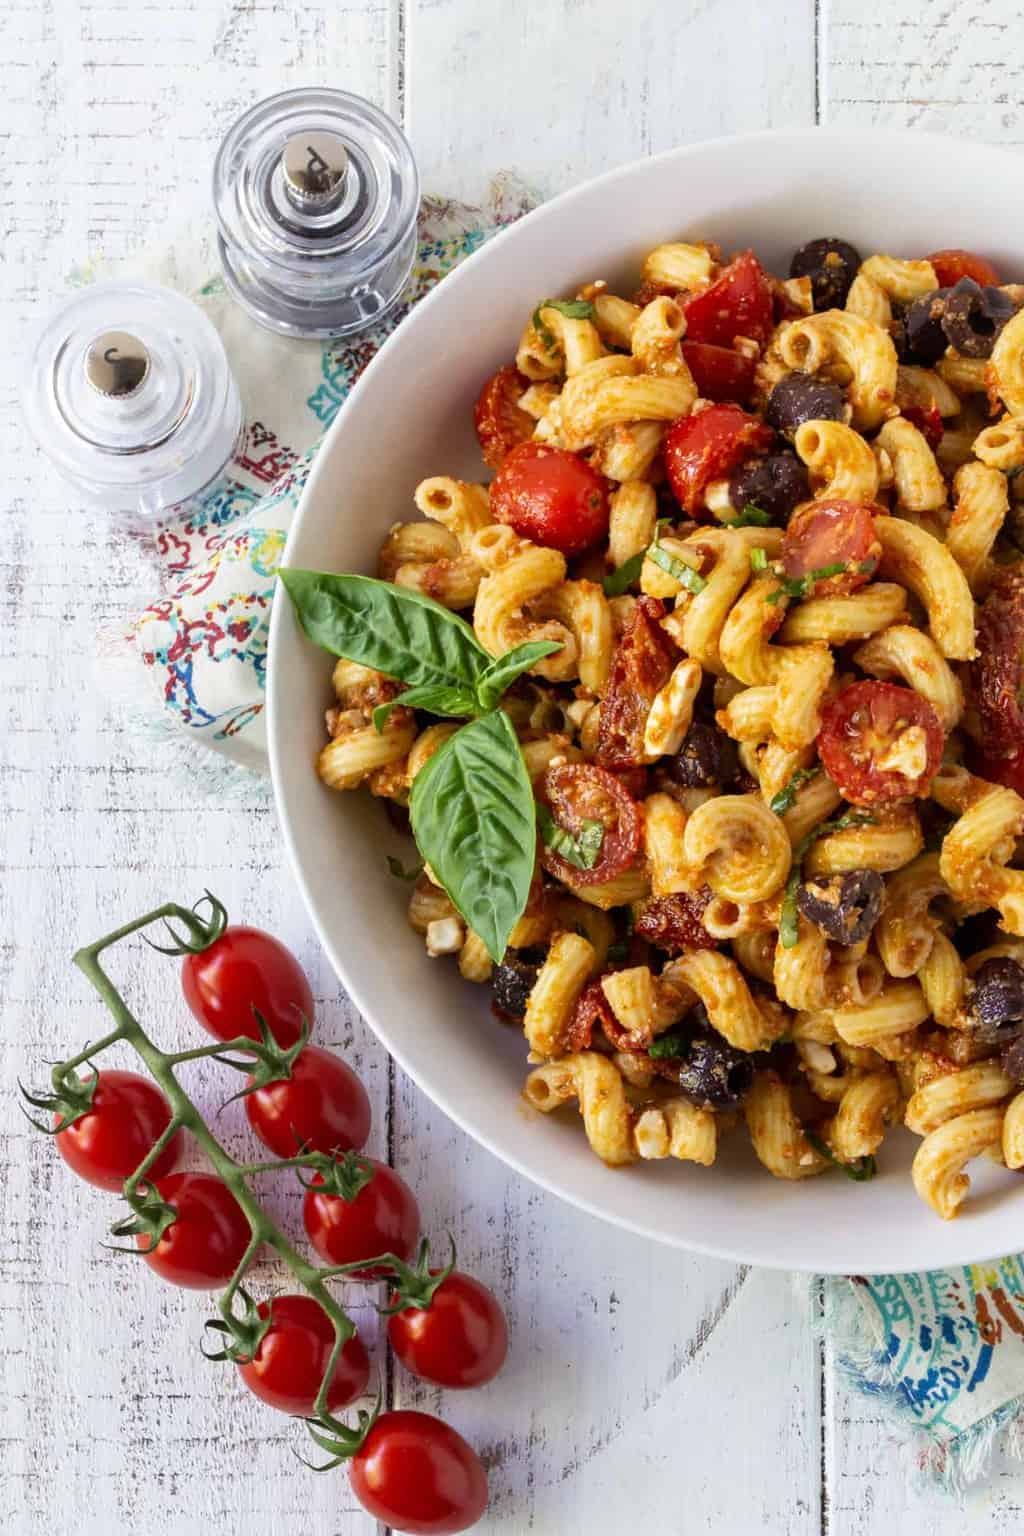 Greek Pasta Salad Make Ahead Recipe Garnish With Lemon